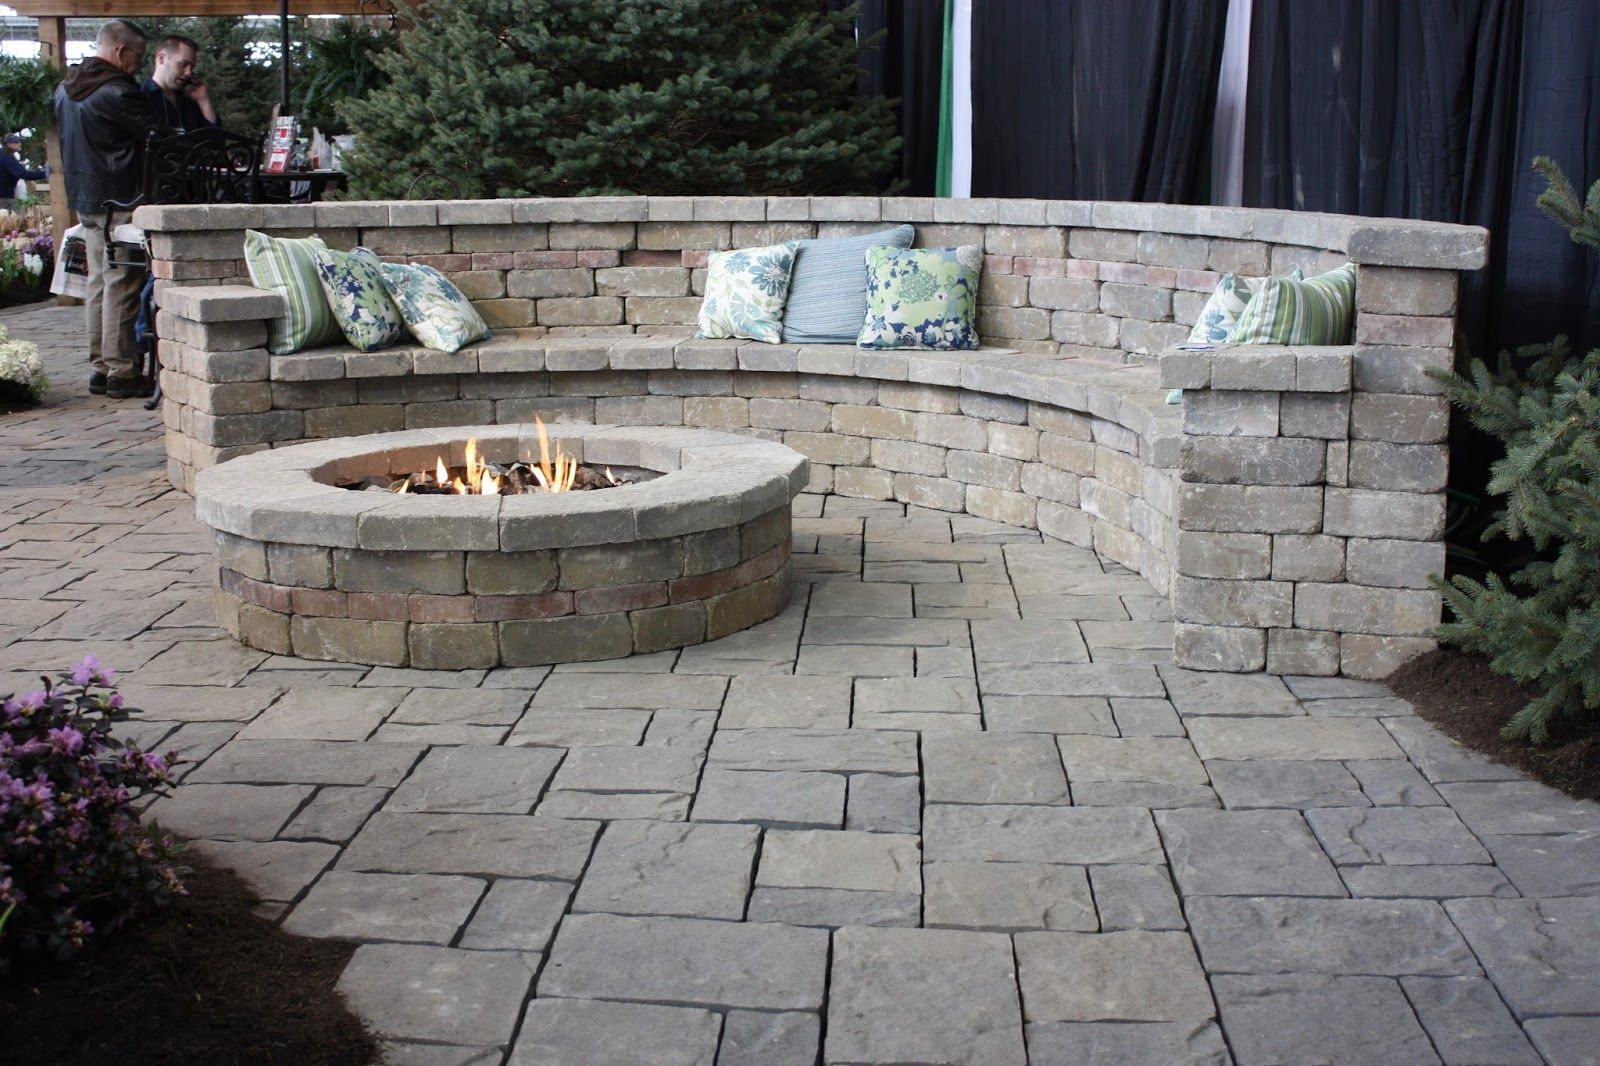 For A Small Patio Fire Pit With Curved Brick Seating Cozy Outdoor Fire Pit Designs Outdoor Fire Pit Patio